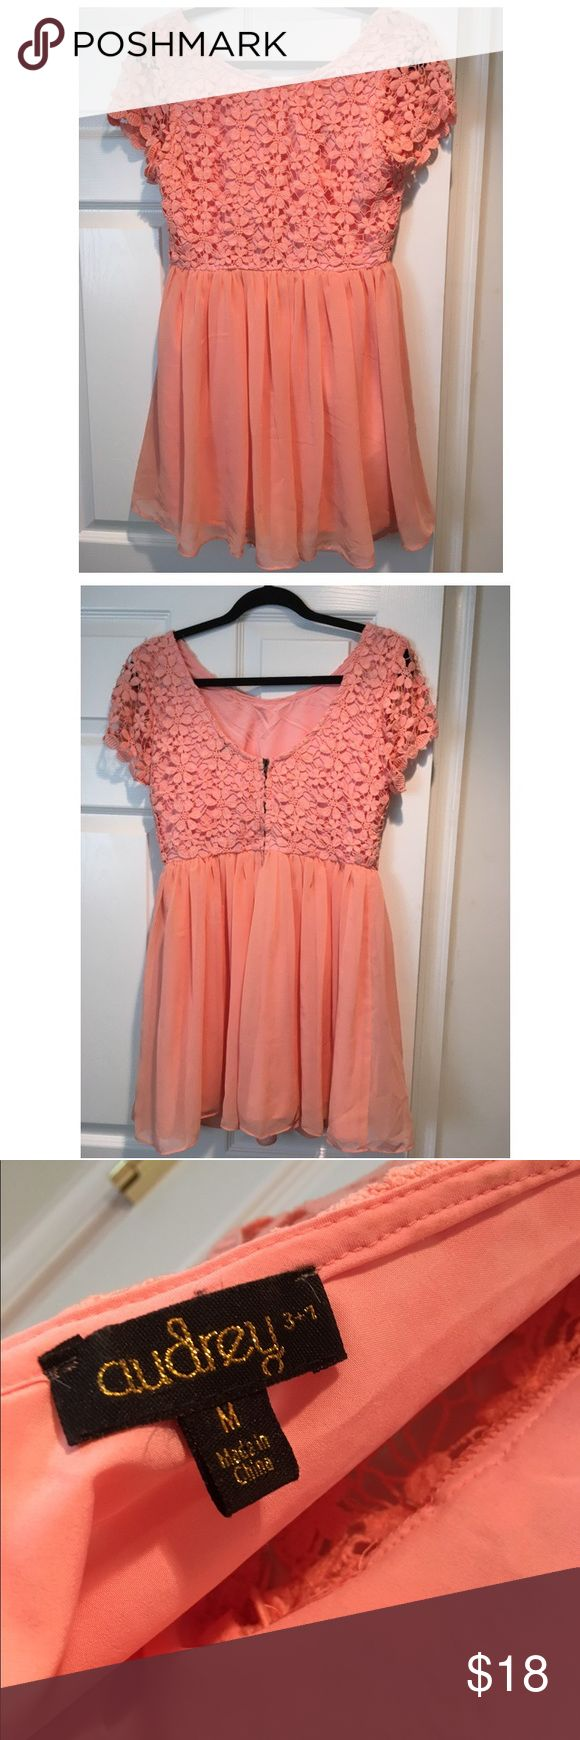 Peach Lace Dress Peach dress with lace top perfect for a wedding. Purchased at Francesca's Dresses Mini